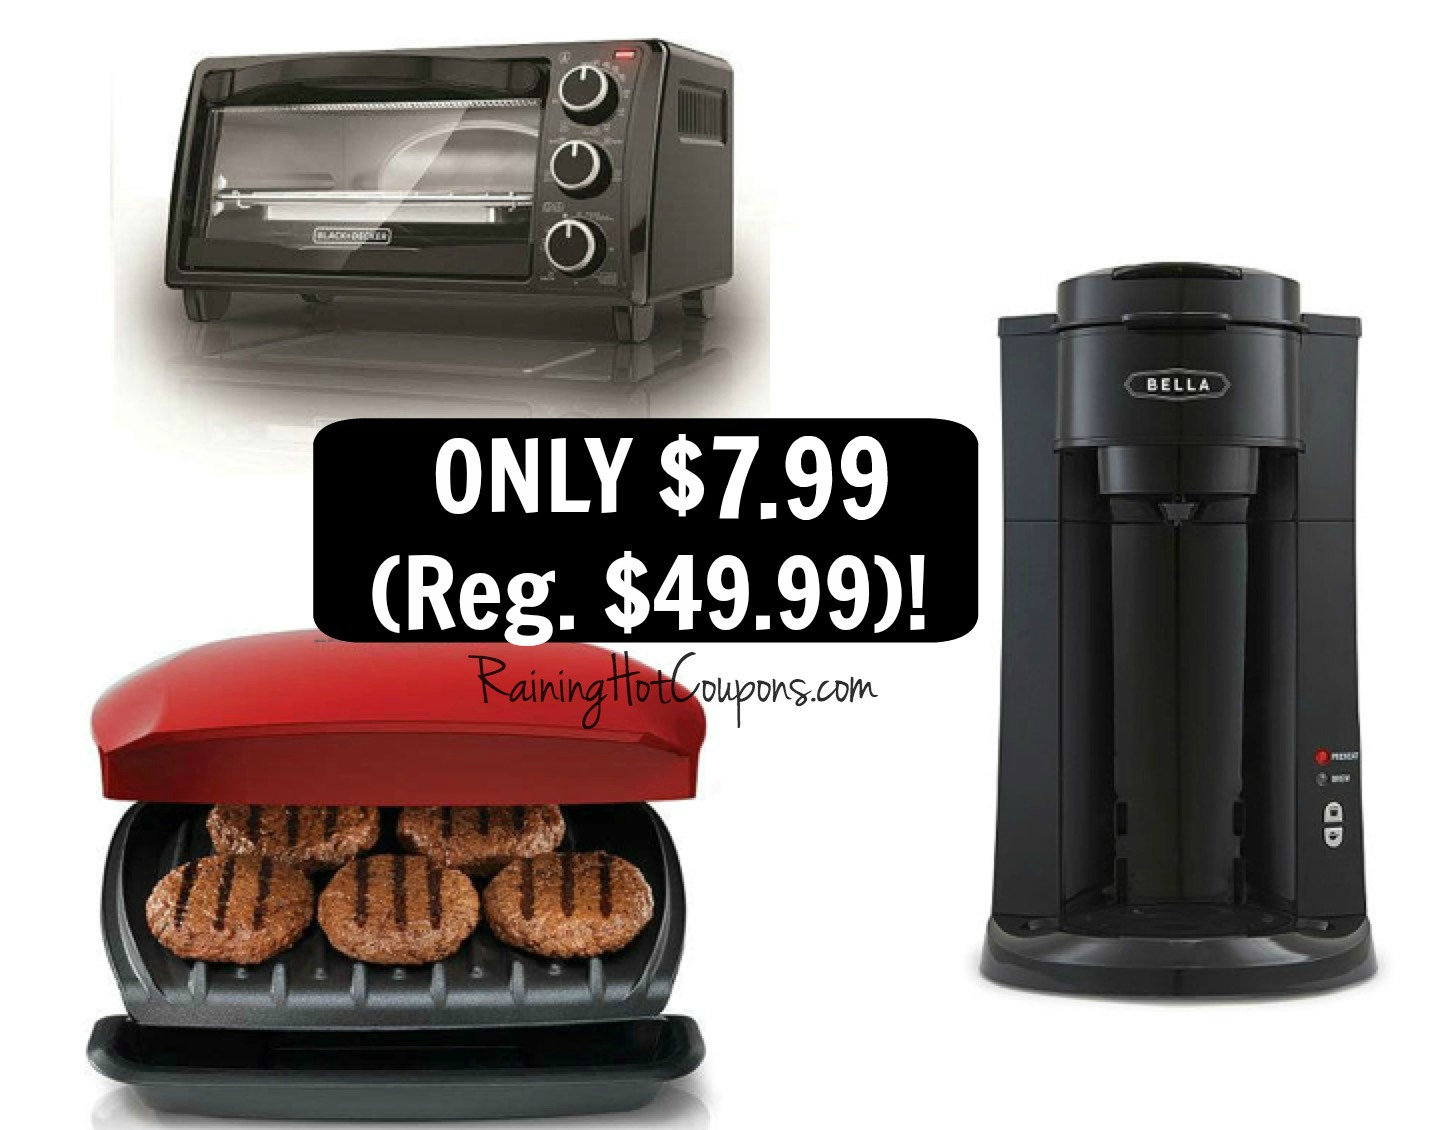 Kohl s: *HOT* George Foreman Grill, Toaster Oven AND Coffee Maker ONLY USD 1.99 each (Reg. USD 49.99)!